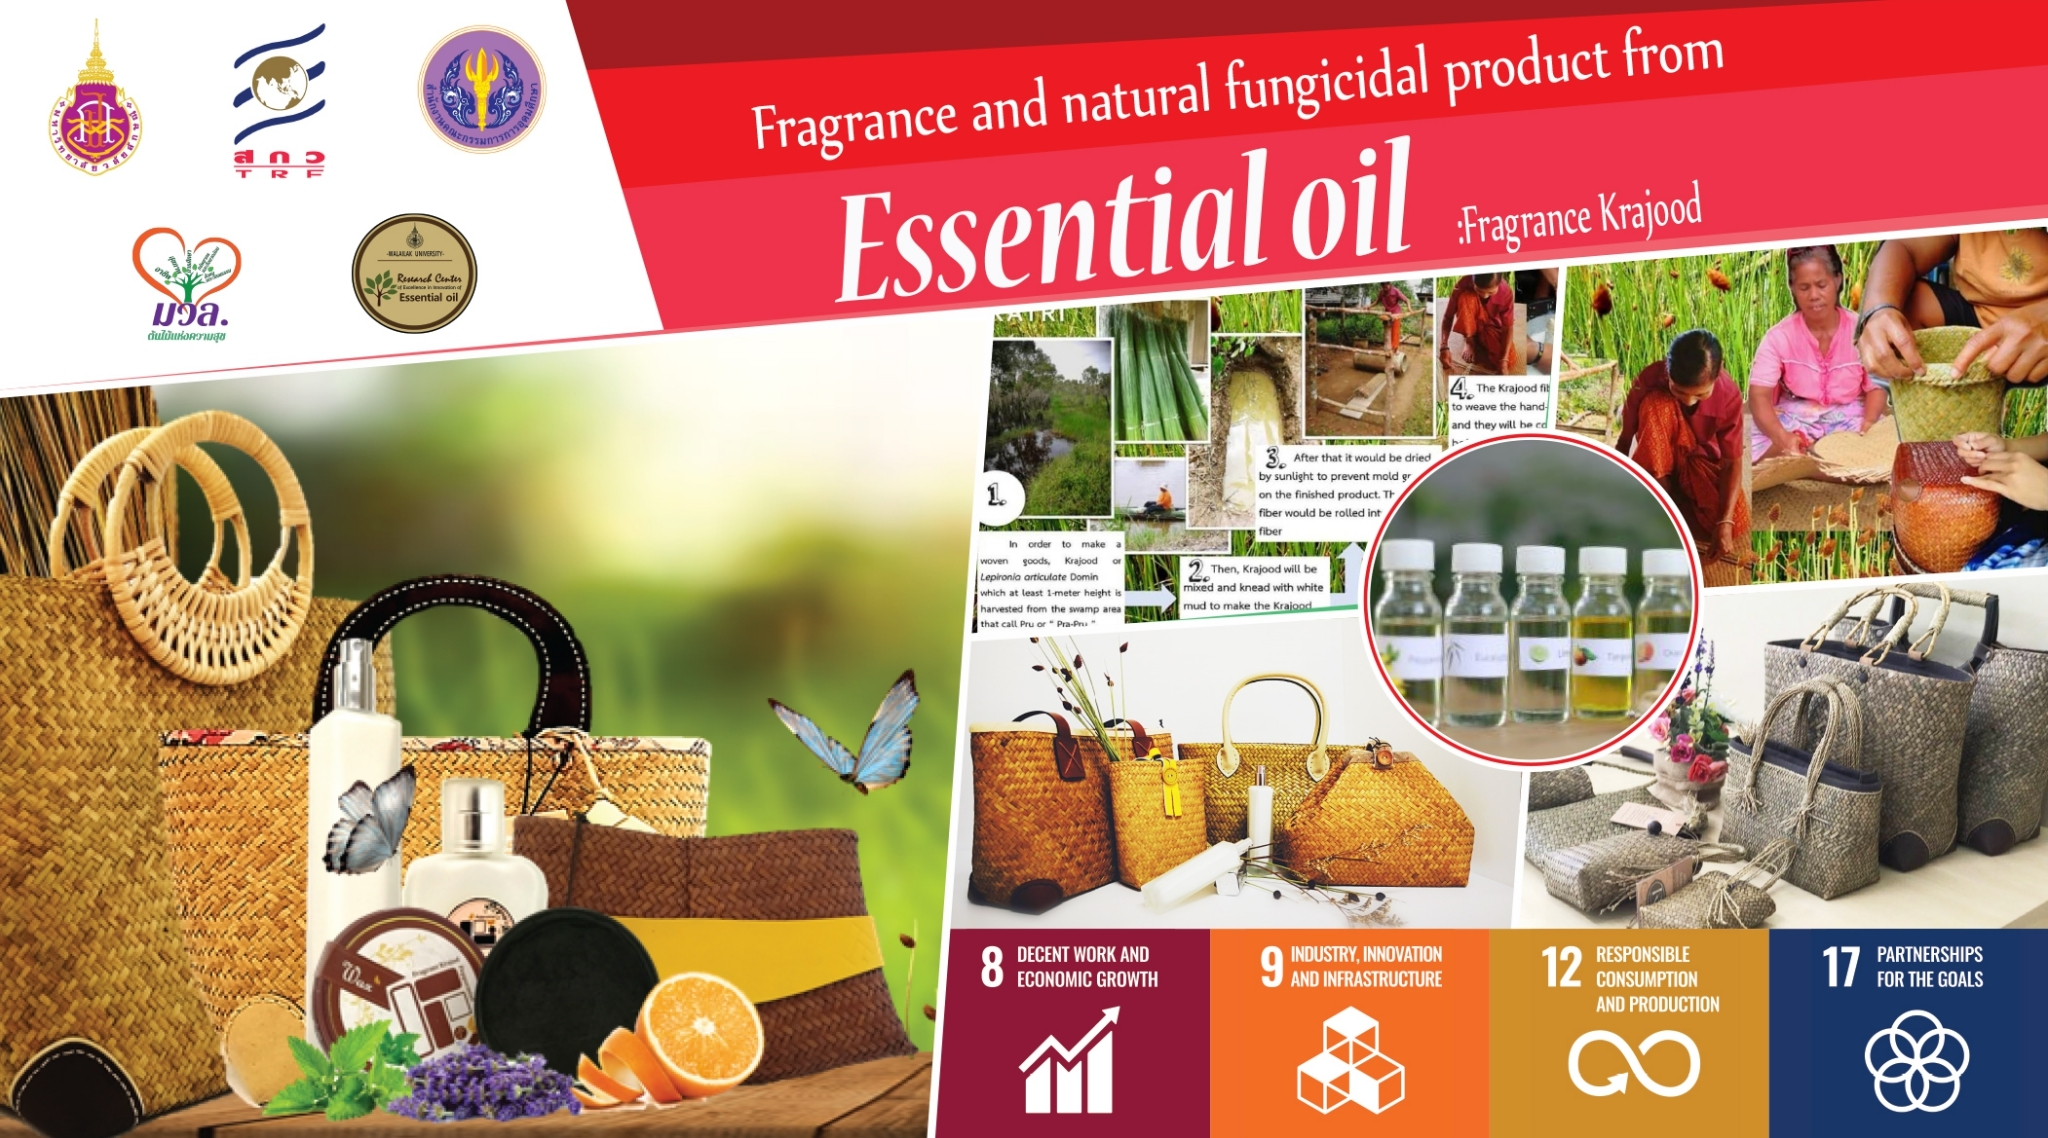 Fragrance and natural fungicidal product from Essential oil :Fragrance Krajood